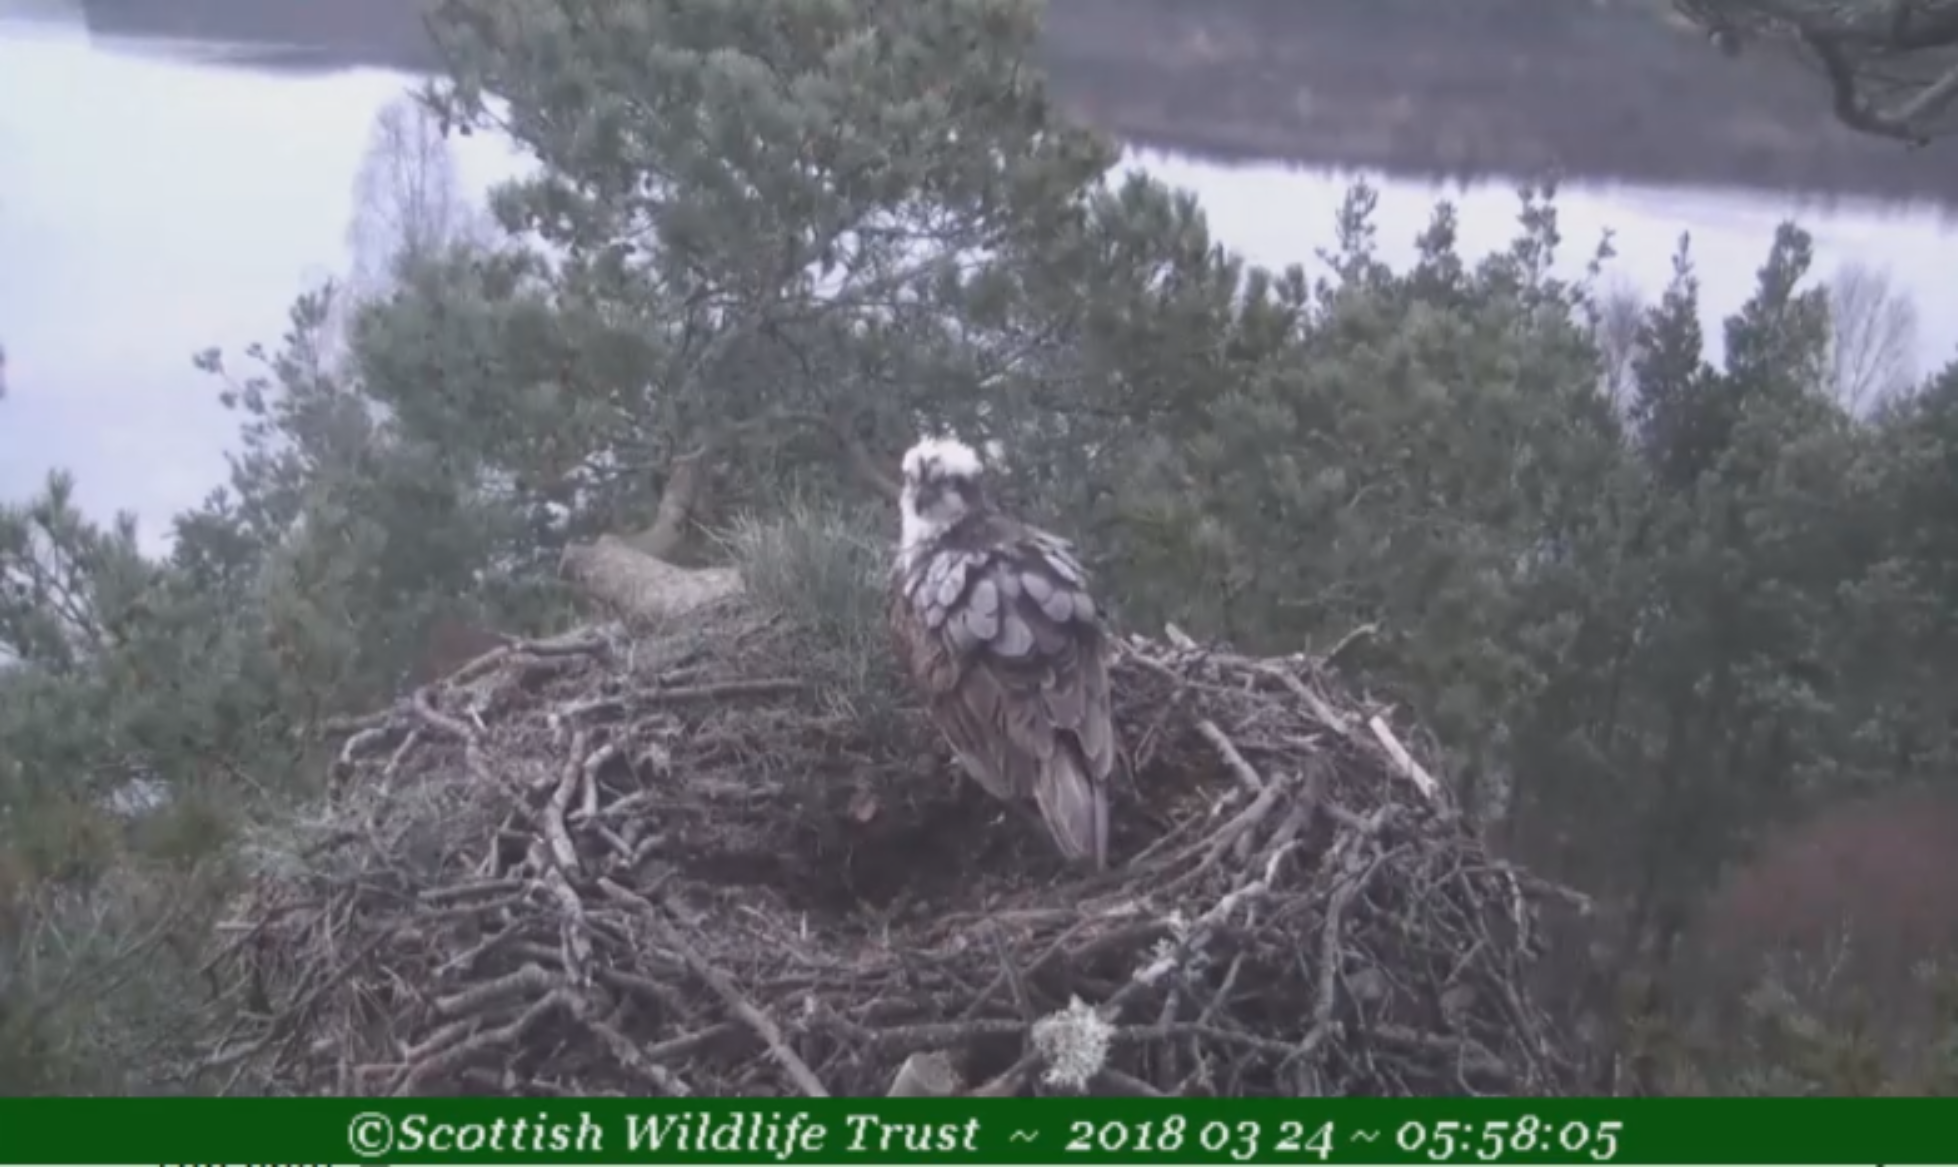 LOCH OF THE LOWES - MARCH 2018 - Loch Garten ospreys - Loch Garten